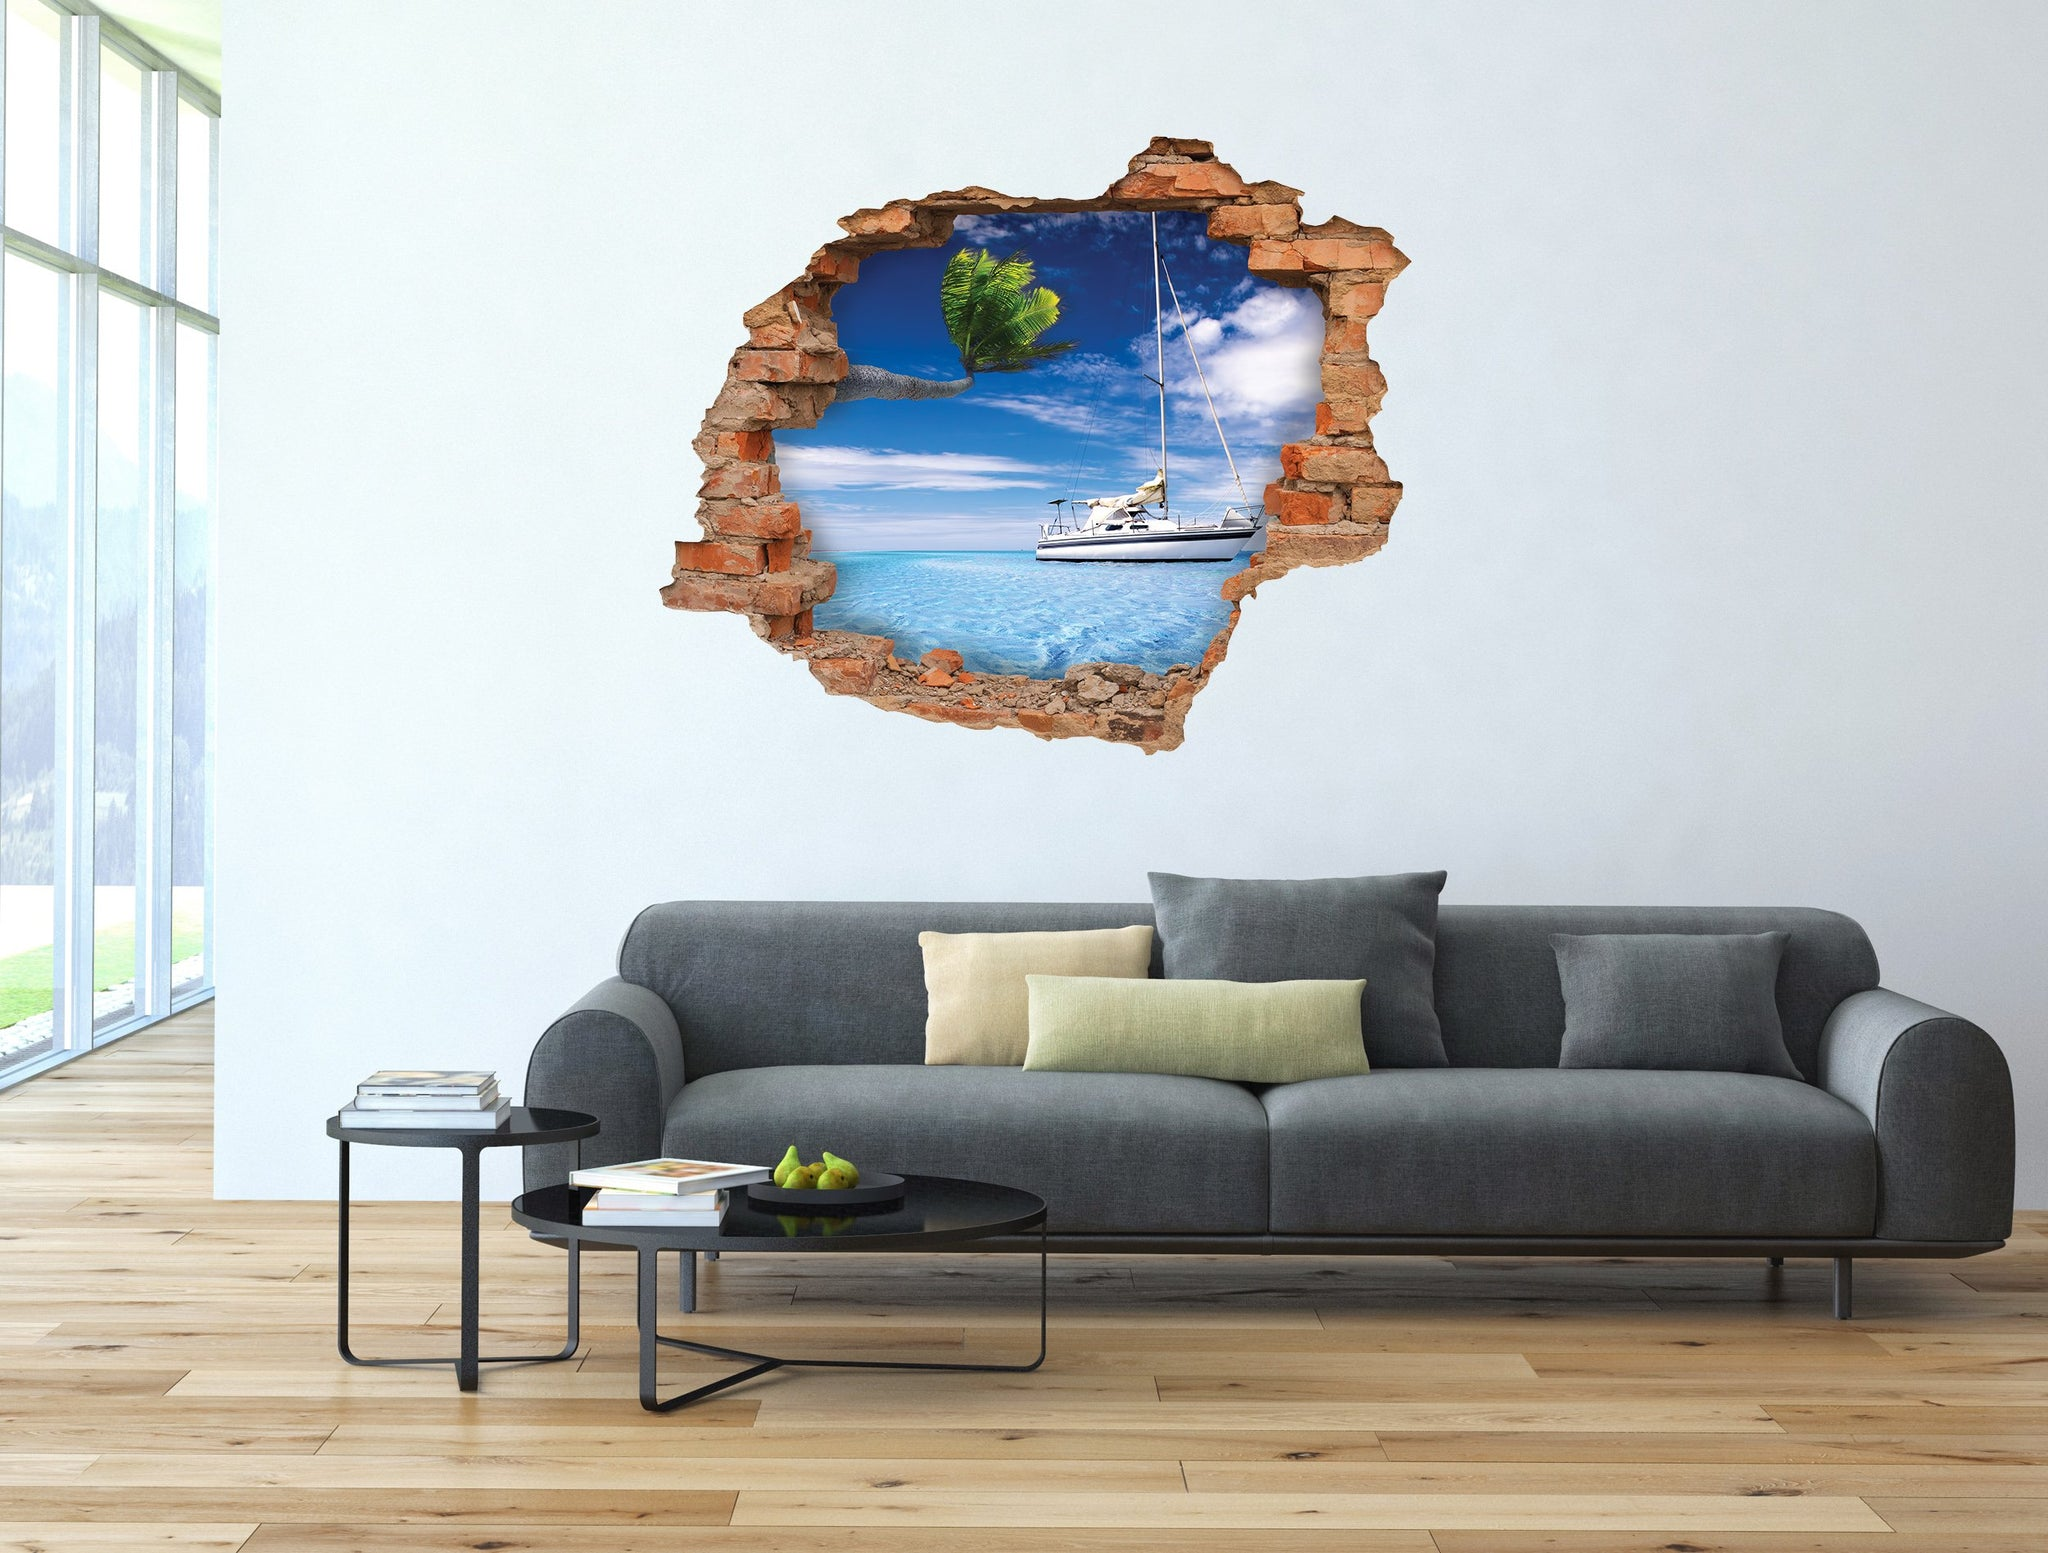 3D Art Wall stickers Palm Boat - 3D028 - Art Life Decor